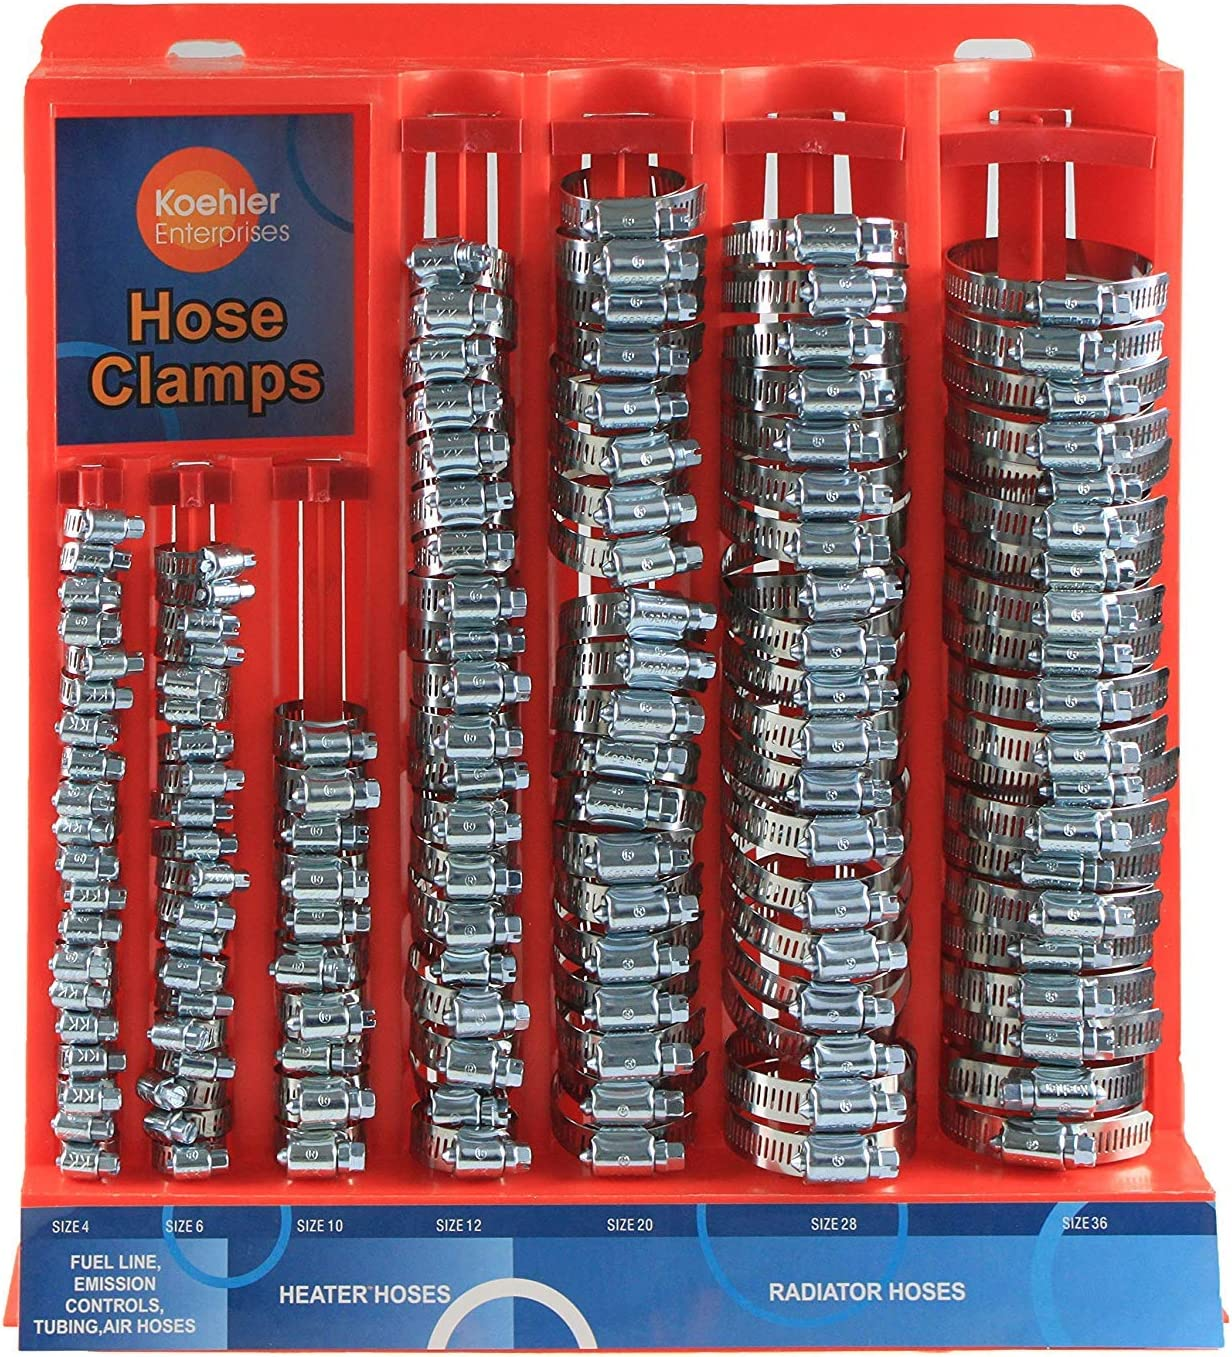 Large Hose Clamp Display Rack Hose Clamps Not Included